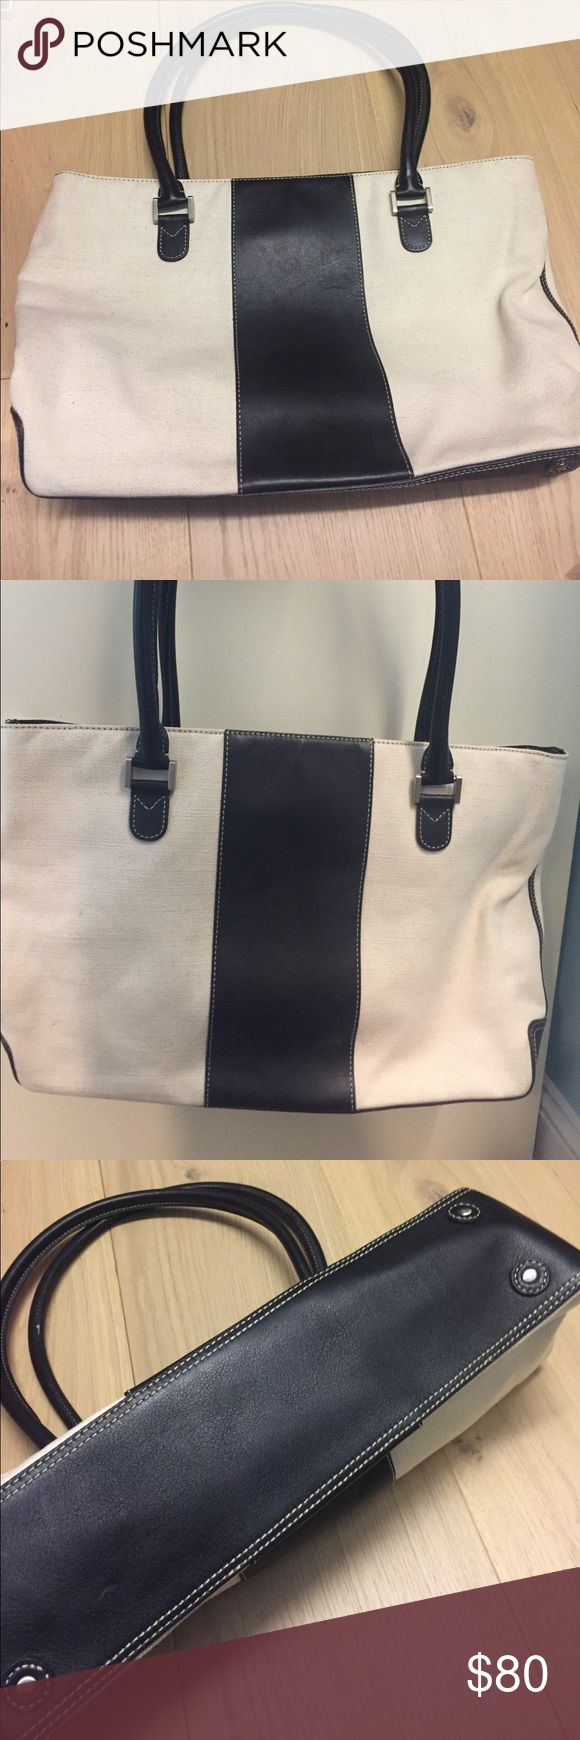 J Crew Summer tote J Crew summer tote with canvas and leather detailing. Barely used and in excellent condition. No signs of wear. Fun interior design with three compartments, and a small zip side pocket. Middle compartment has zipper closure. J. Crew Bags Totes